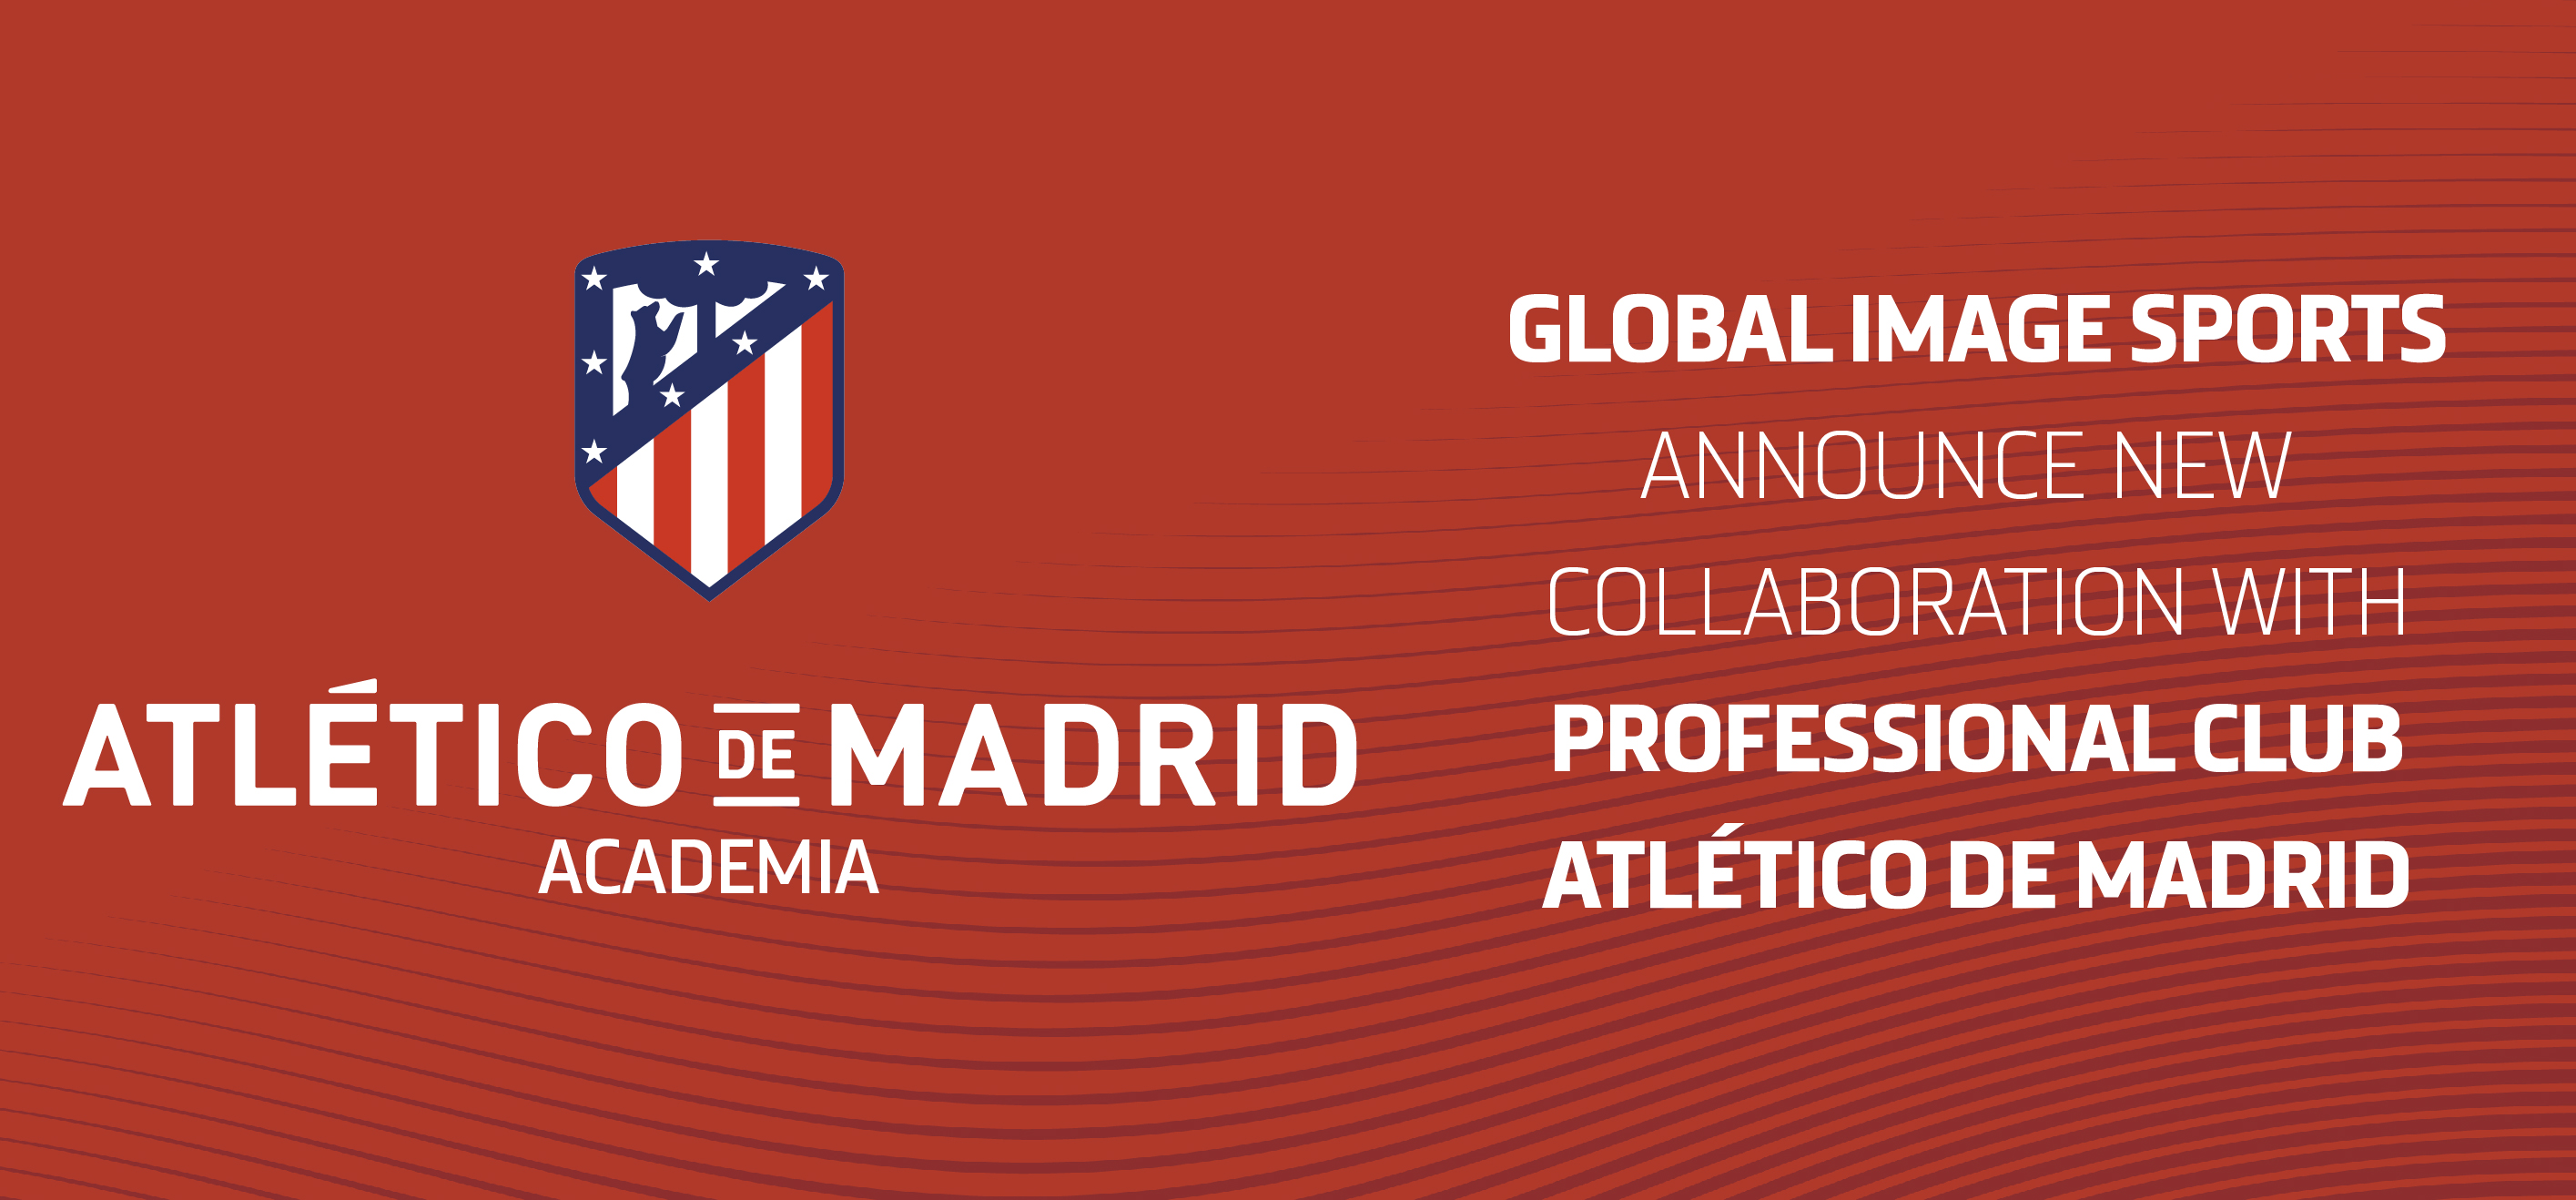 CLUB ATLÉTICO DE MADRID & GLOBAL IMAGE SPORTS INC. ANNOUNCE FORMAL PARTNERSHIP